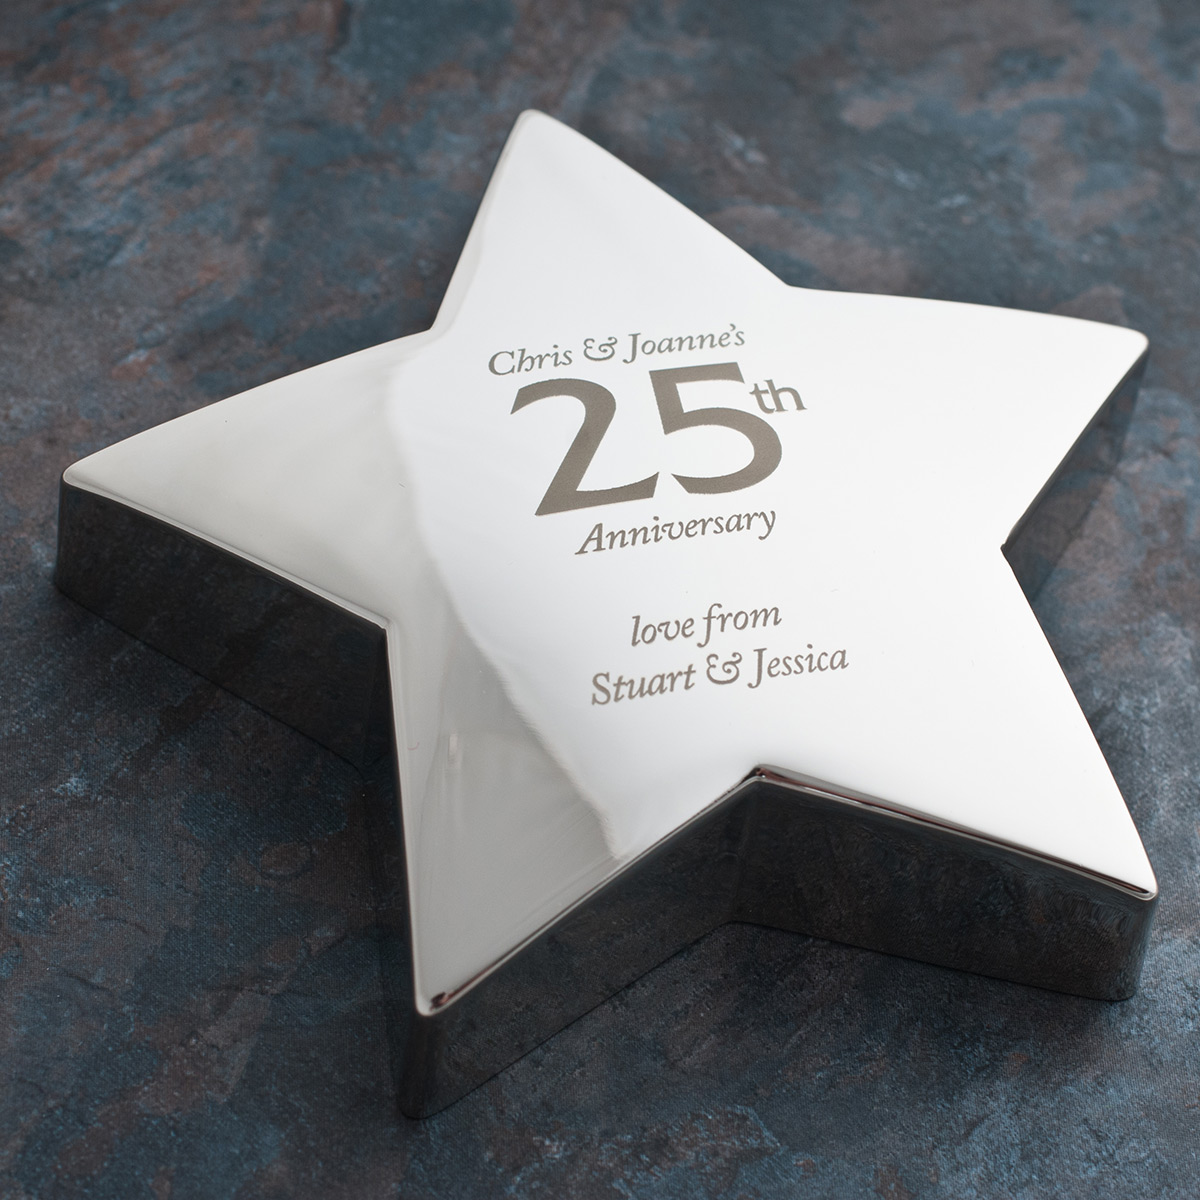 Image of Engraved '25th Anniversary' Silver Star Paperweight